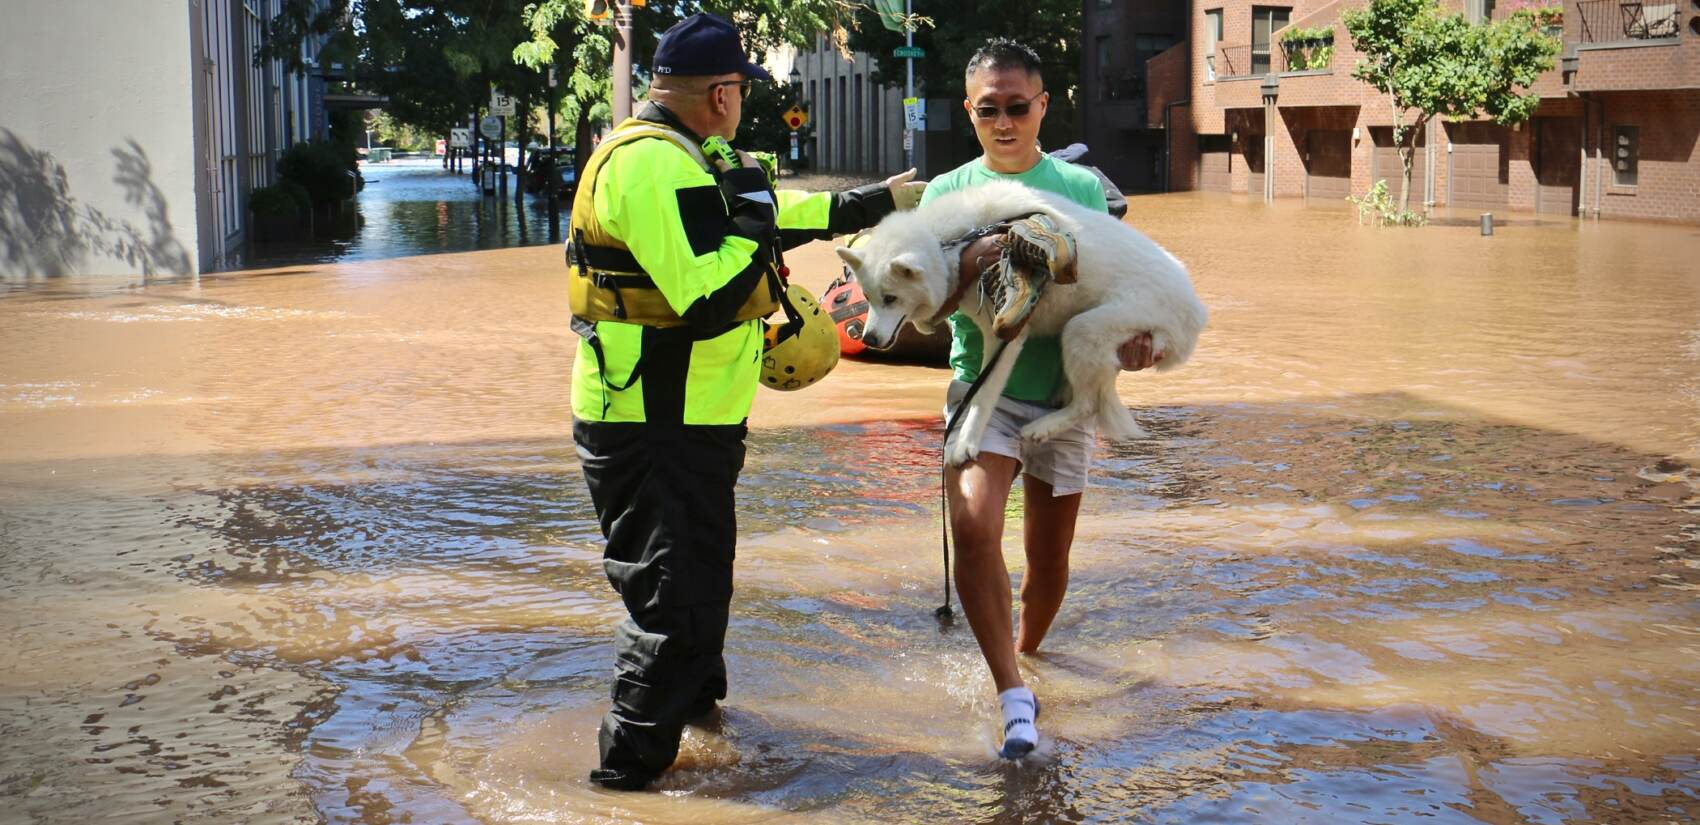 Dog owner carries husky to safety amid flooding.